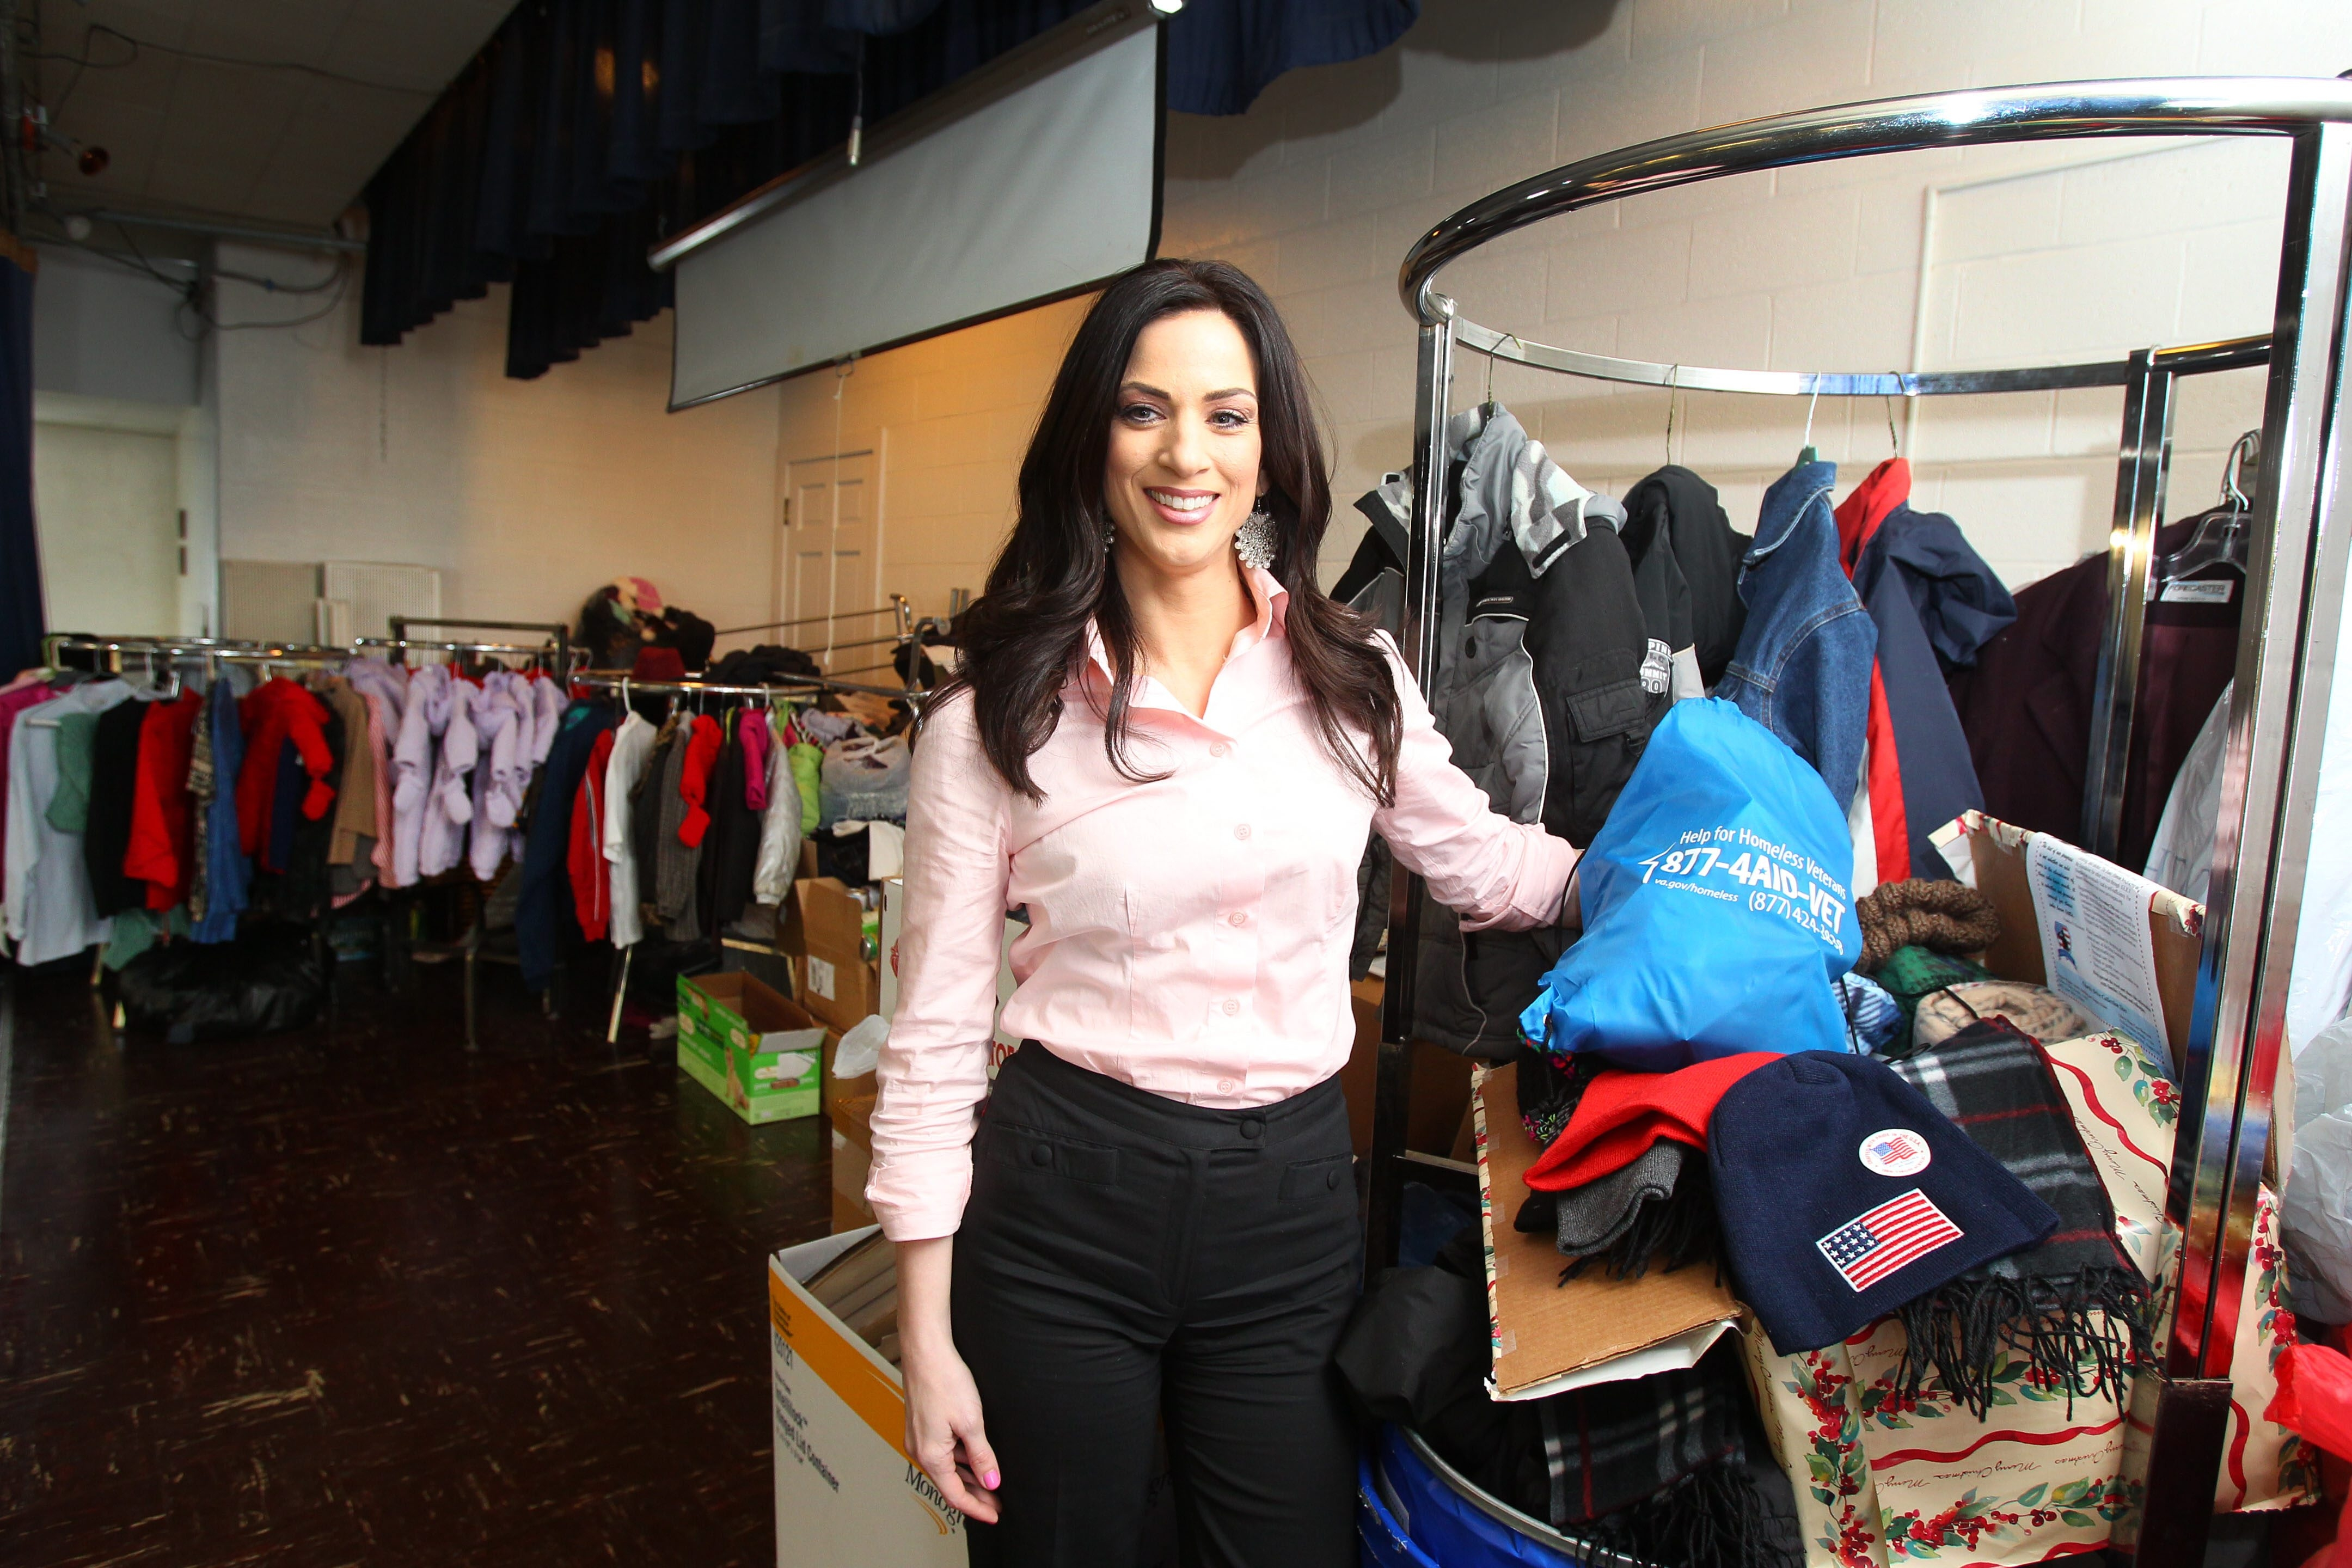 Jennifer O. D'Andrea-Terreri, founder of the not-for-profit Supporting, Empowering, Respecting Veterans and Their Families, or SERV, shows donations gathered at Christ Community Church, where she provides assistance that includes housing options.